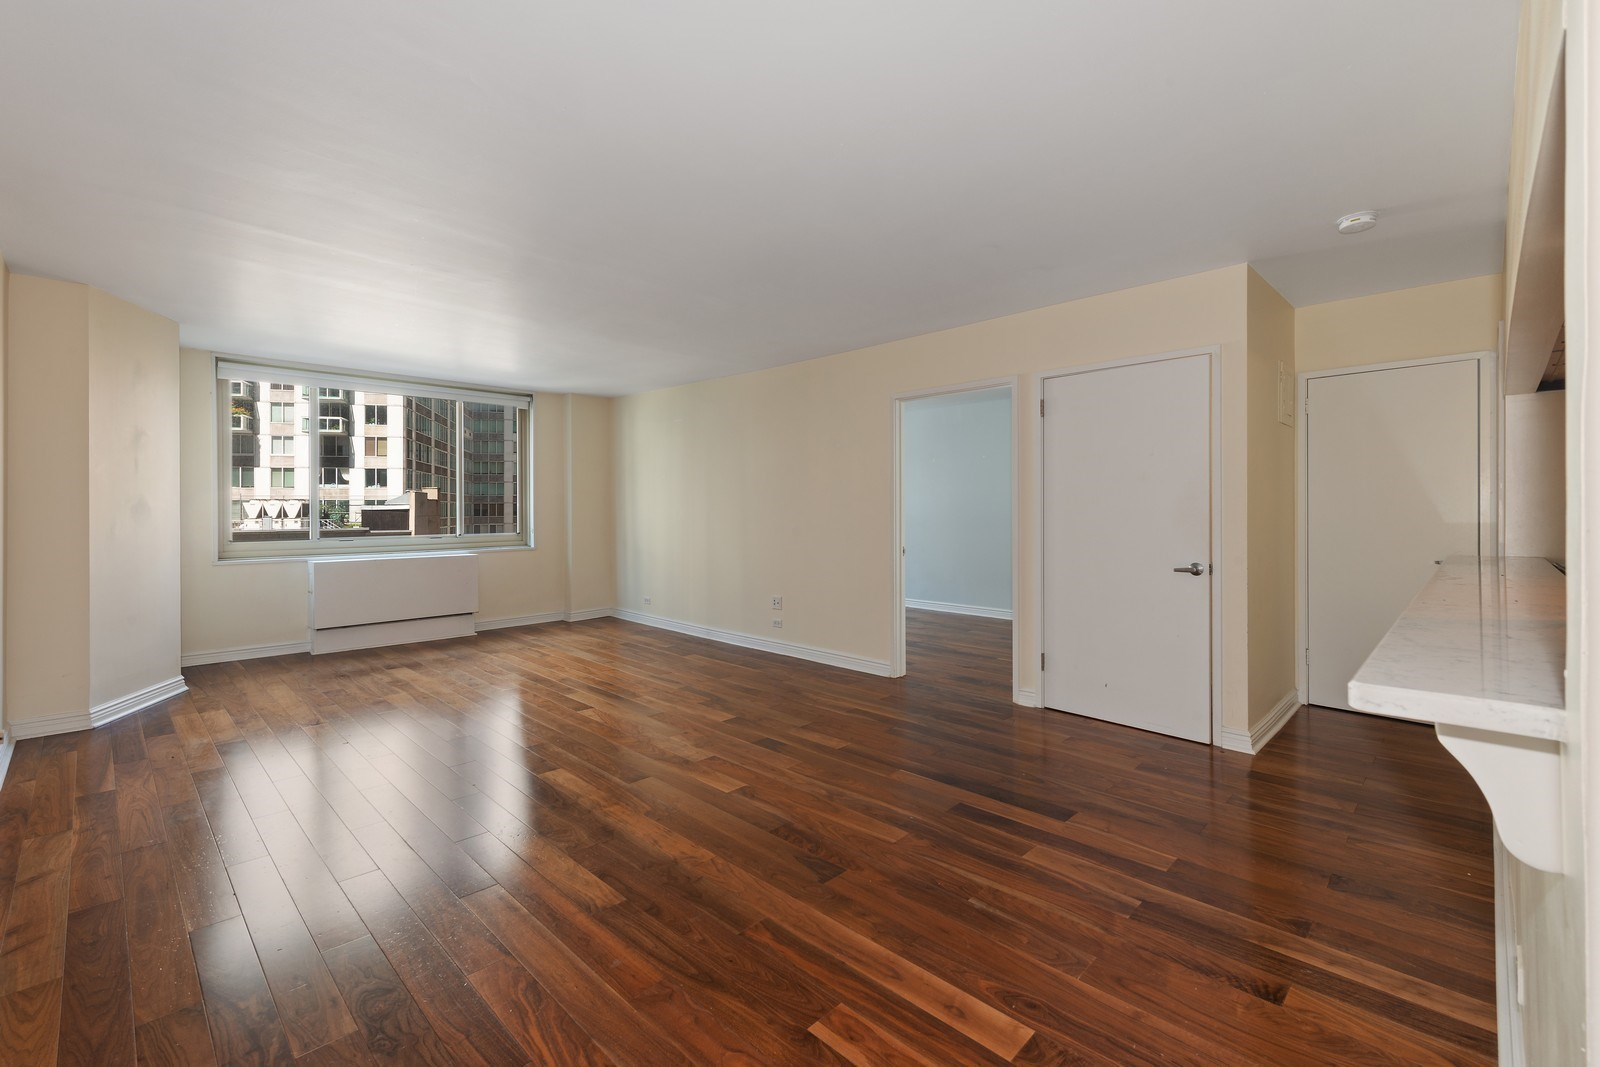 Apartment for sale at 30 West 63rd Street, Apt 6-L